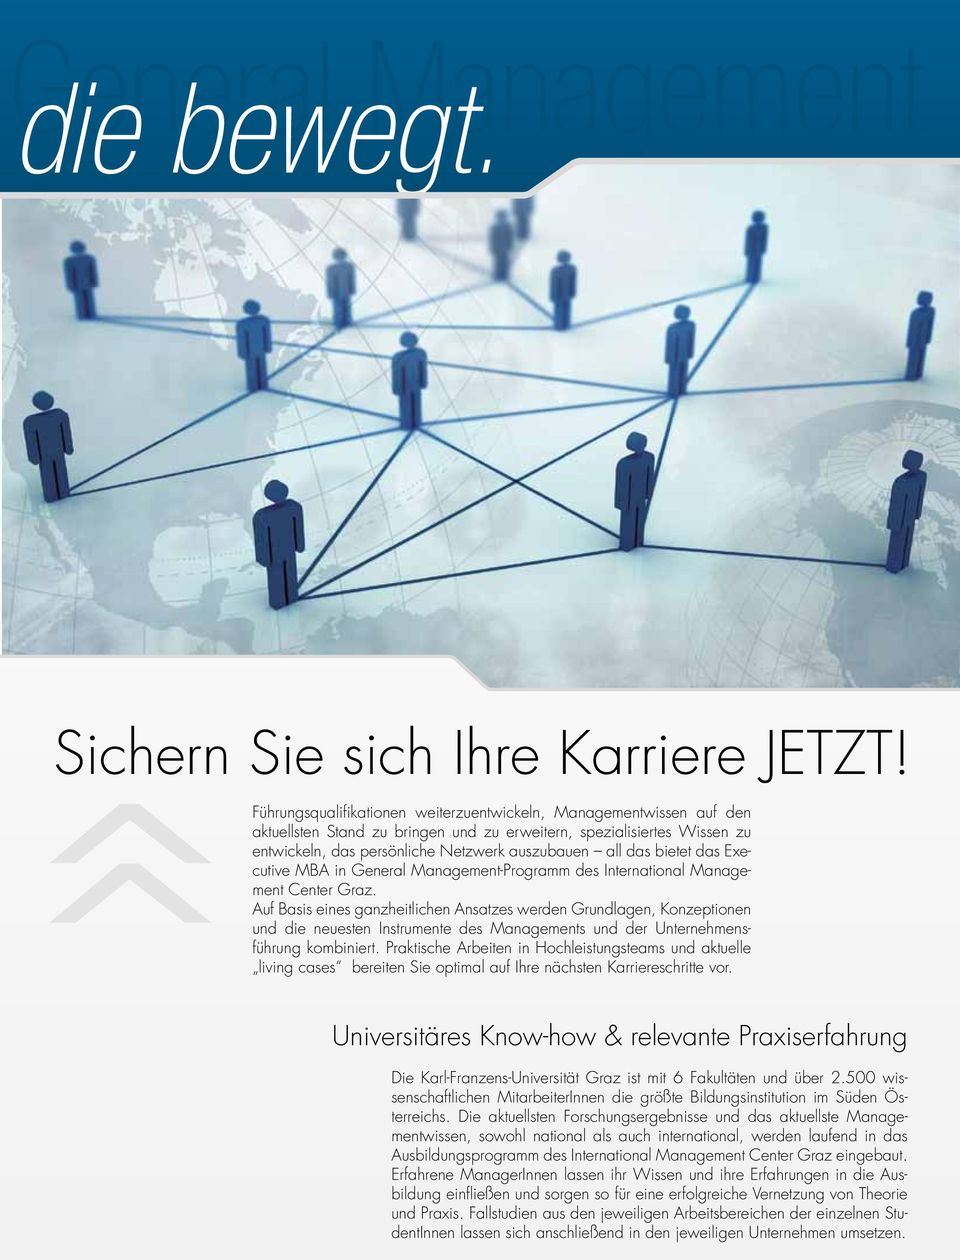 bietet das Executive MBA in General Management-Programm des International Management Center Graz.